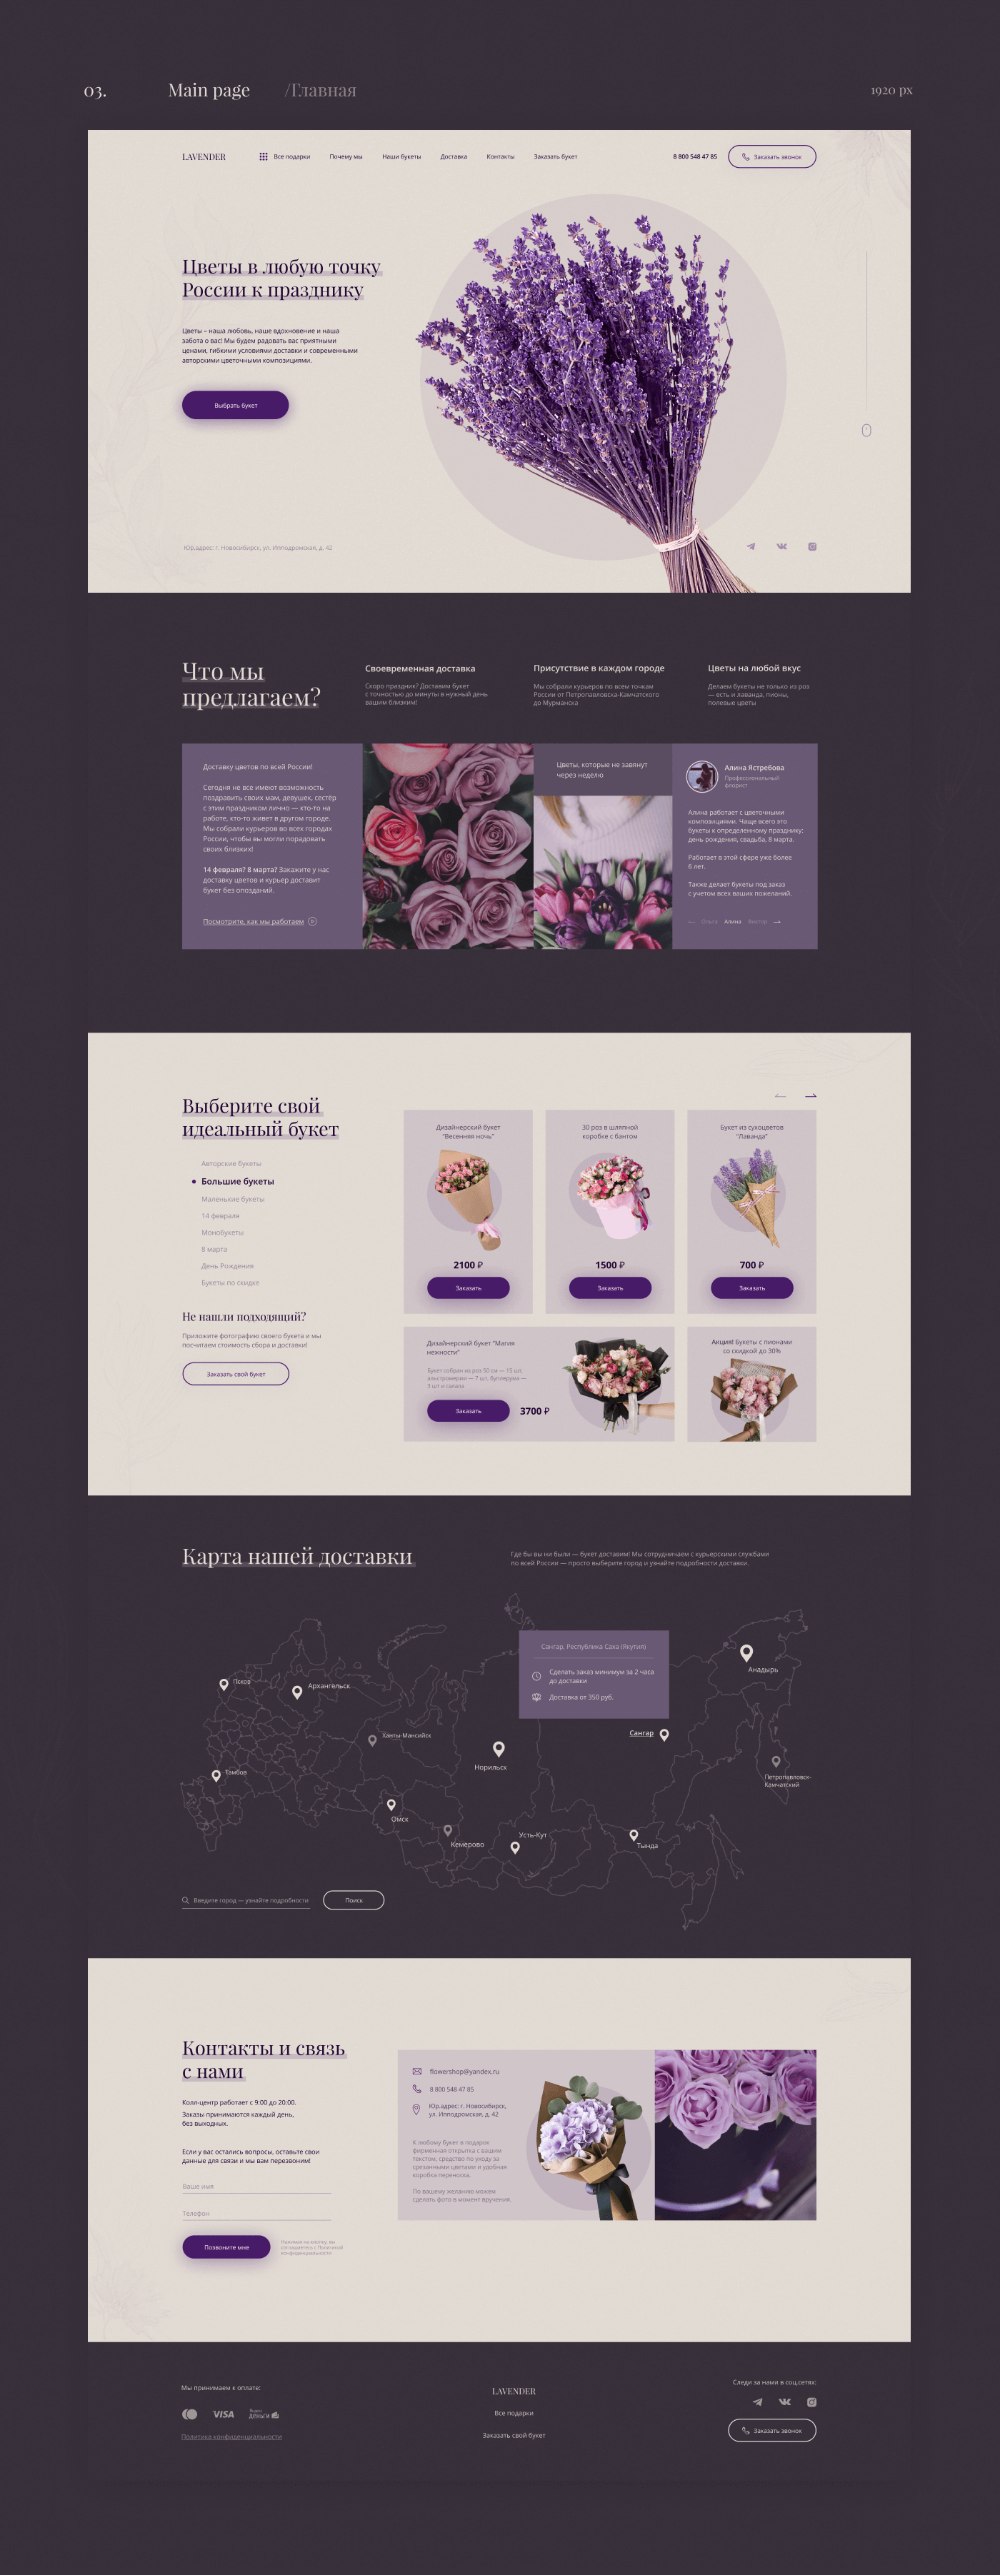 Landing page for Online Flower Shop #userexperience